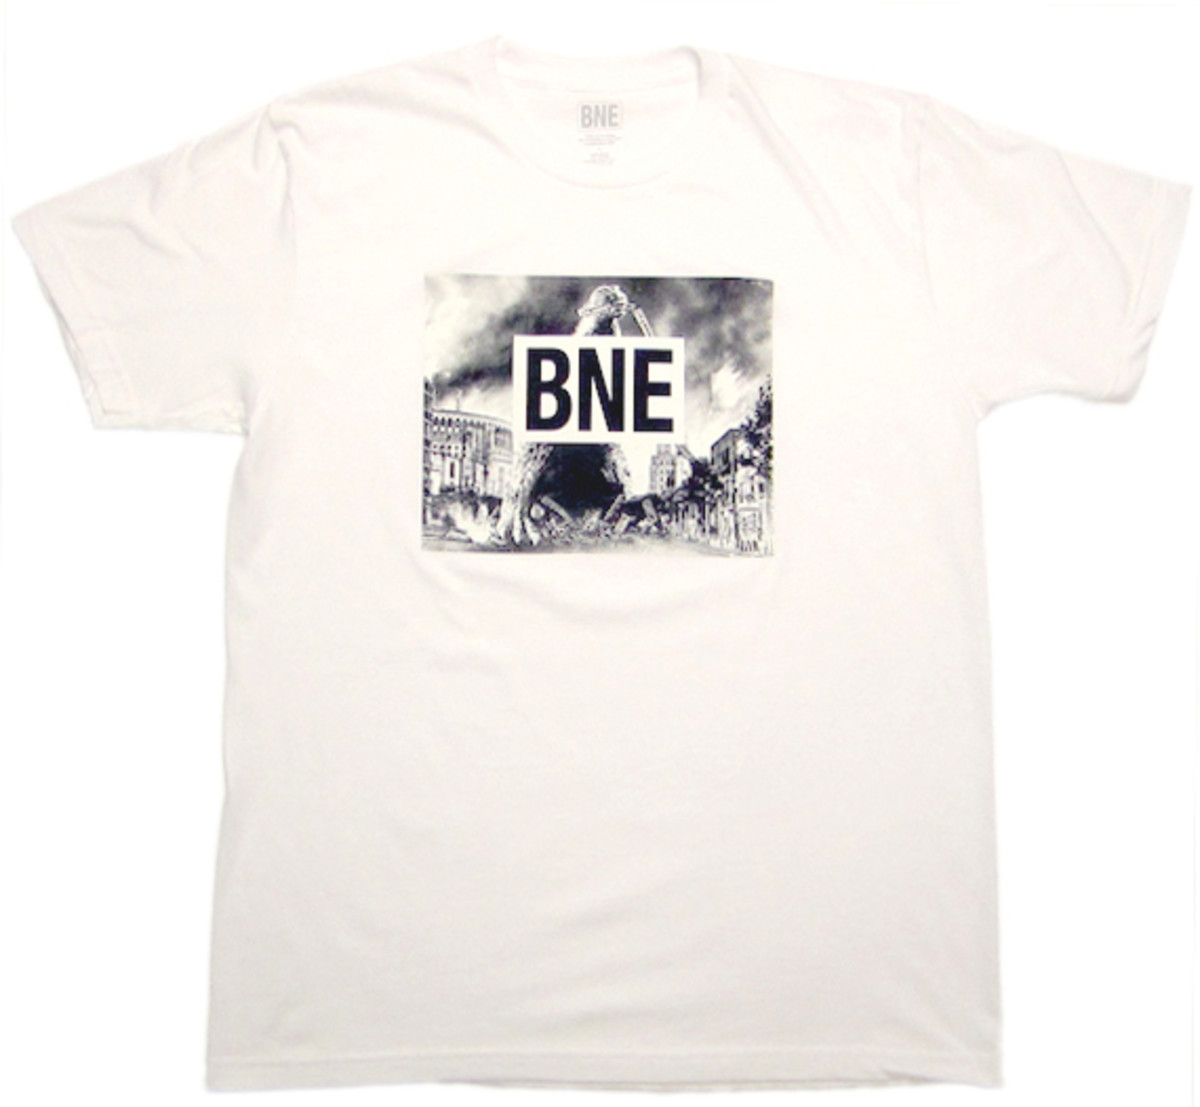 bne-water-foundation-fukushima-relief-collection-07